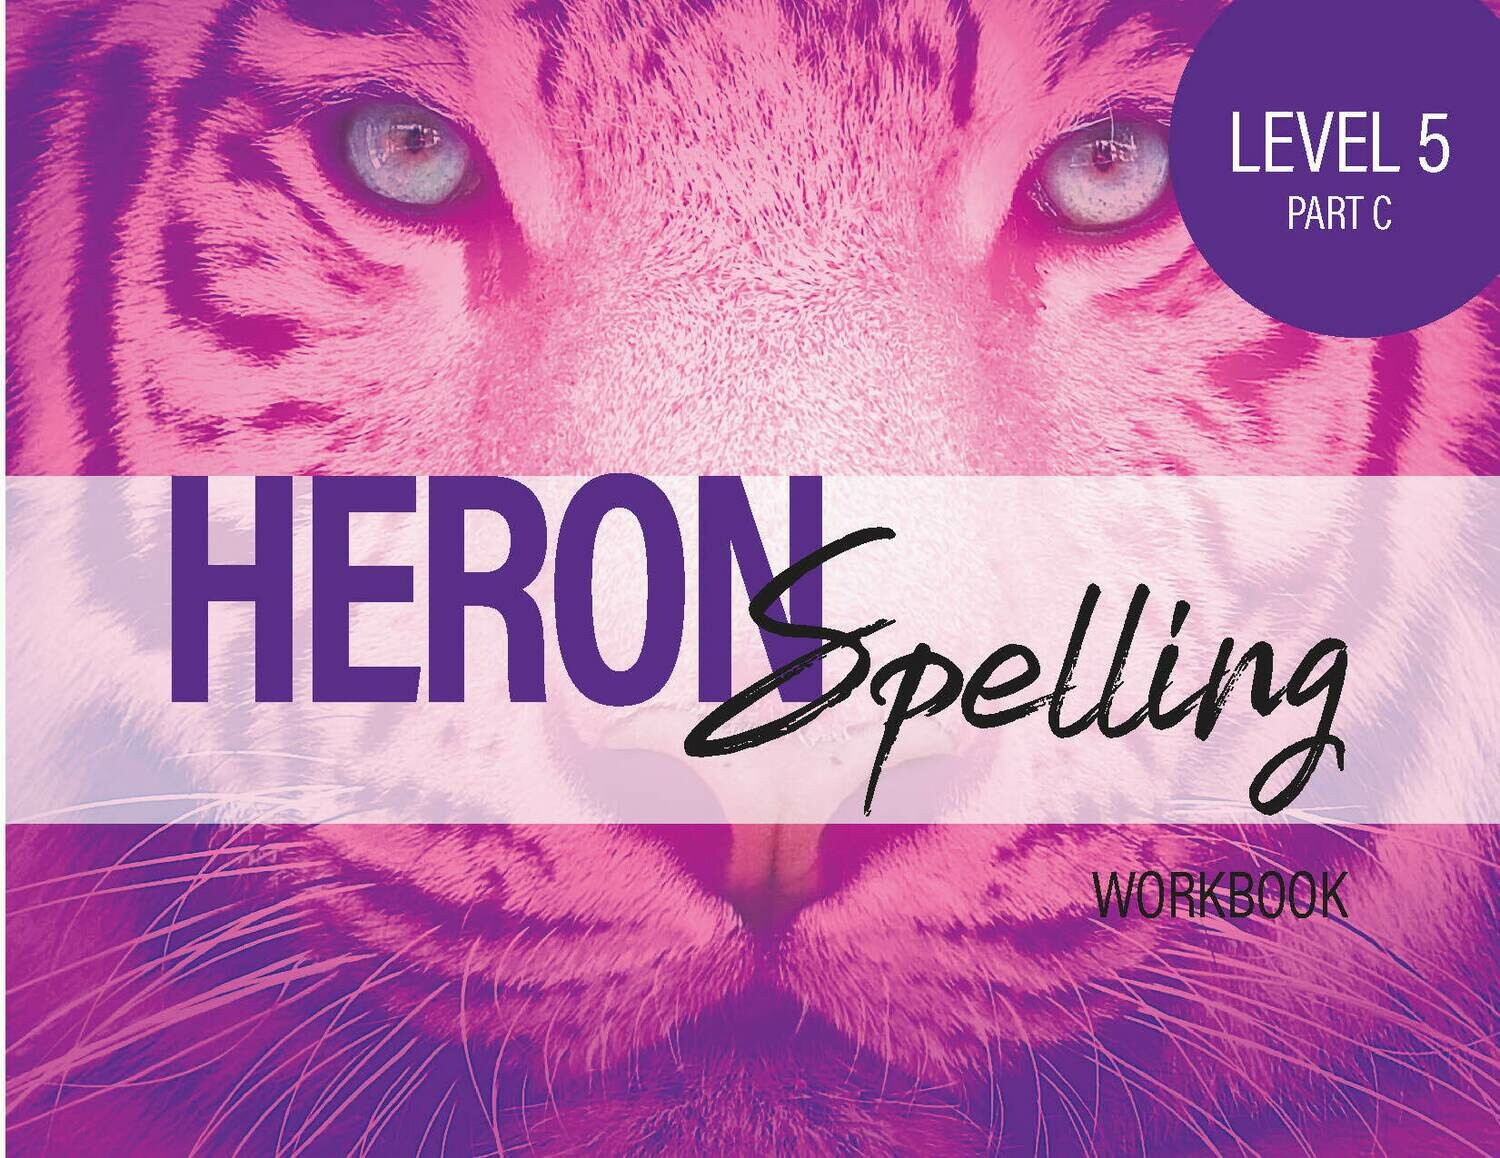 Heron Spelling Level 5C Workbook